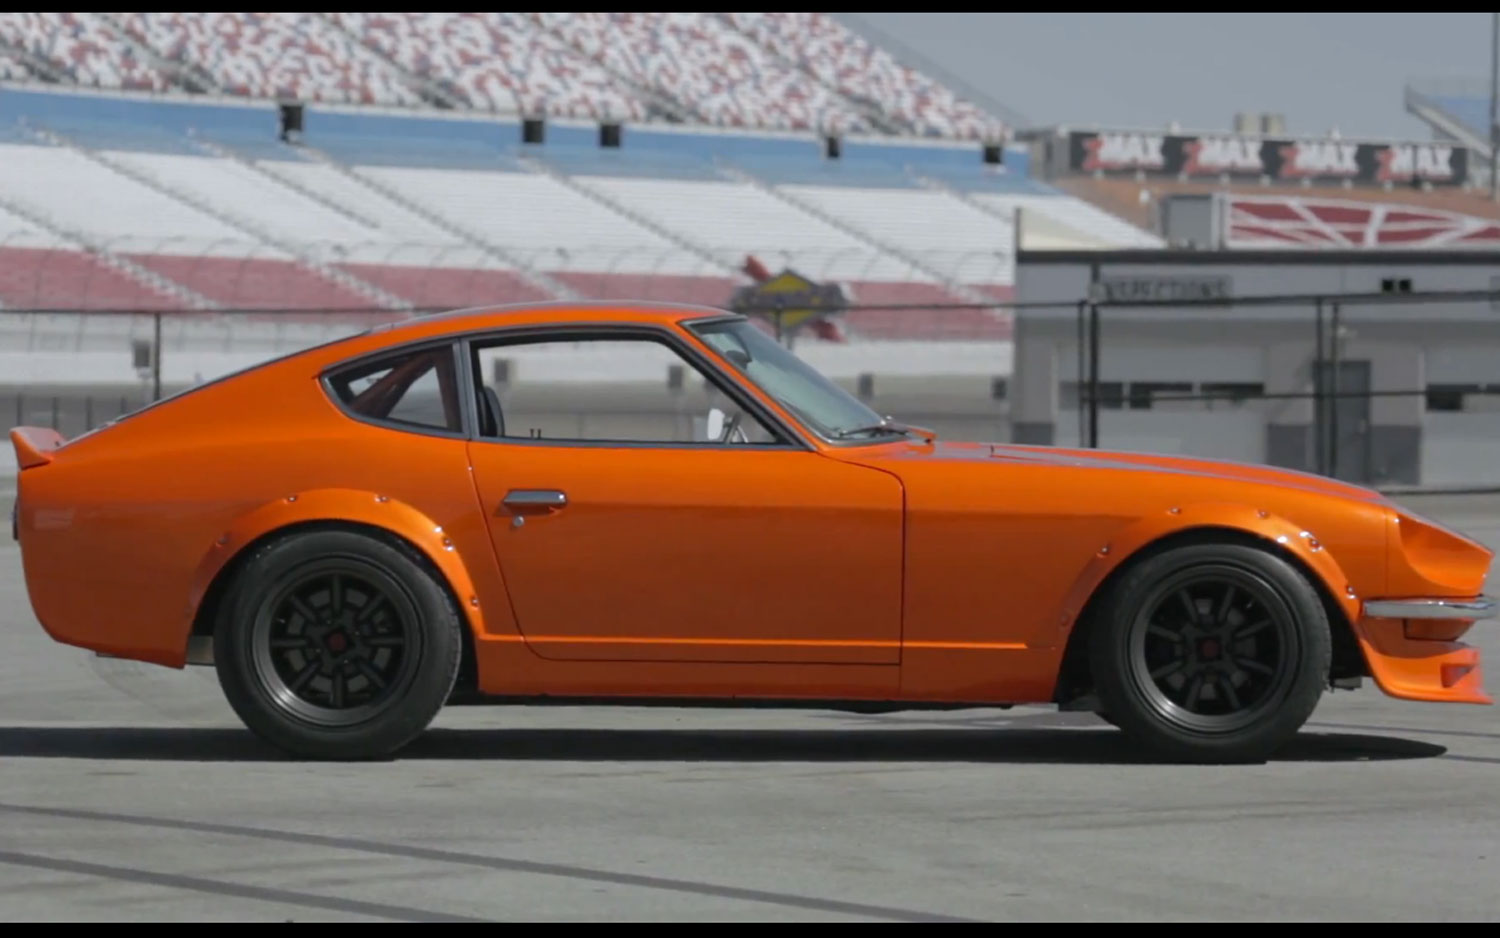 Worksheet. 44 Years Of The Nissan Z Car Why Restore Classic Z Cars  Melloy